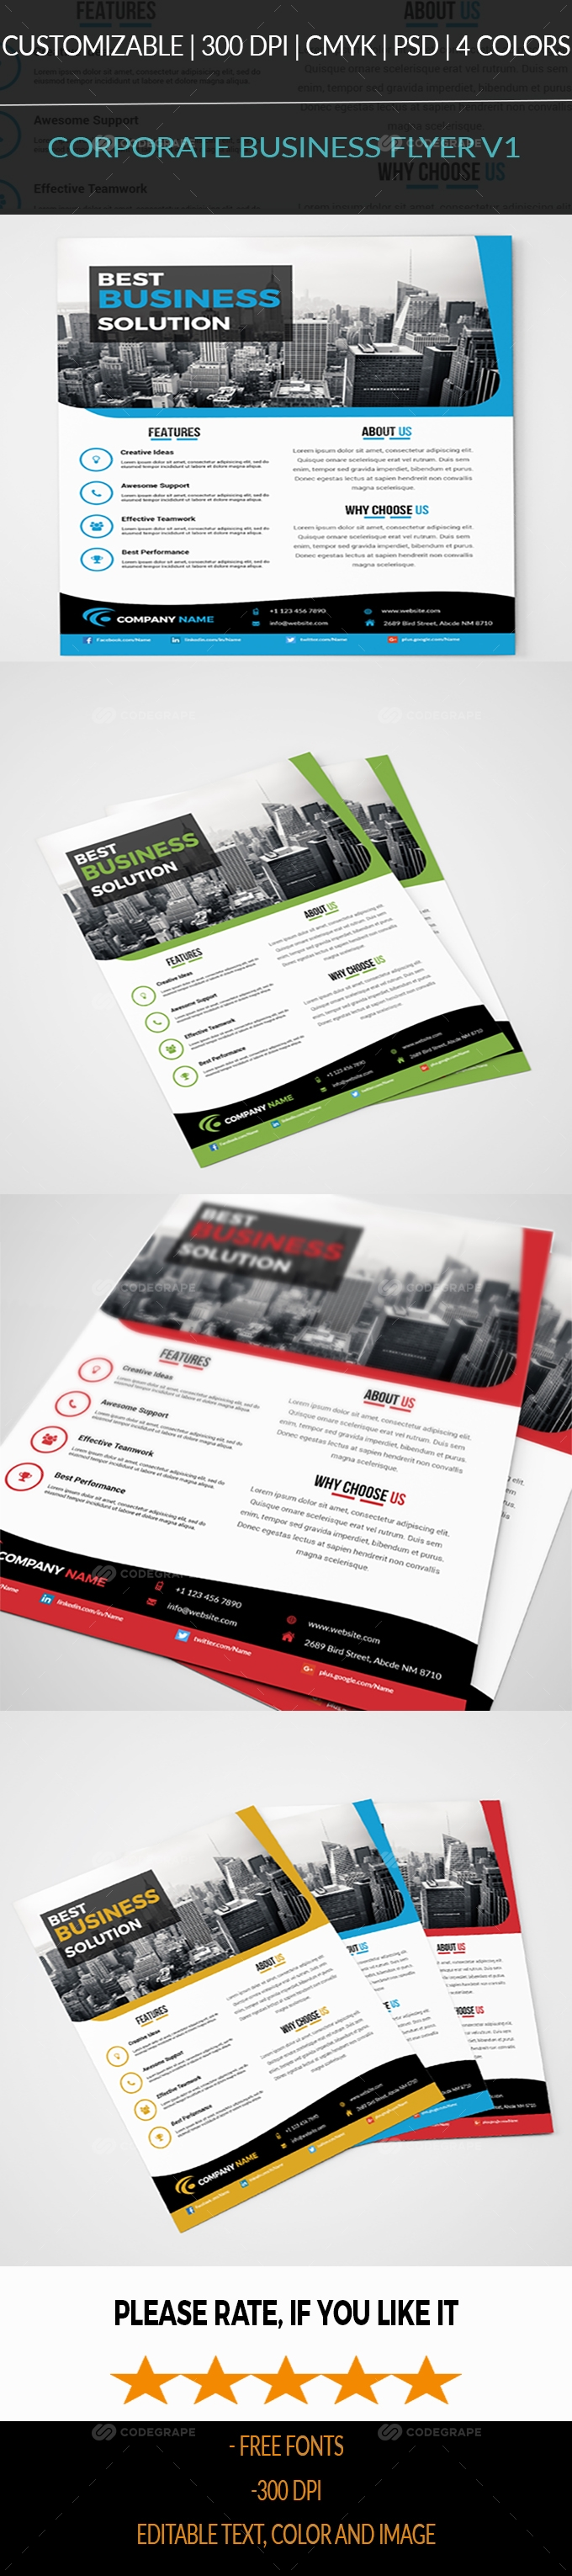 Corporate Business Flyer V1